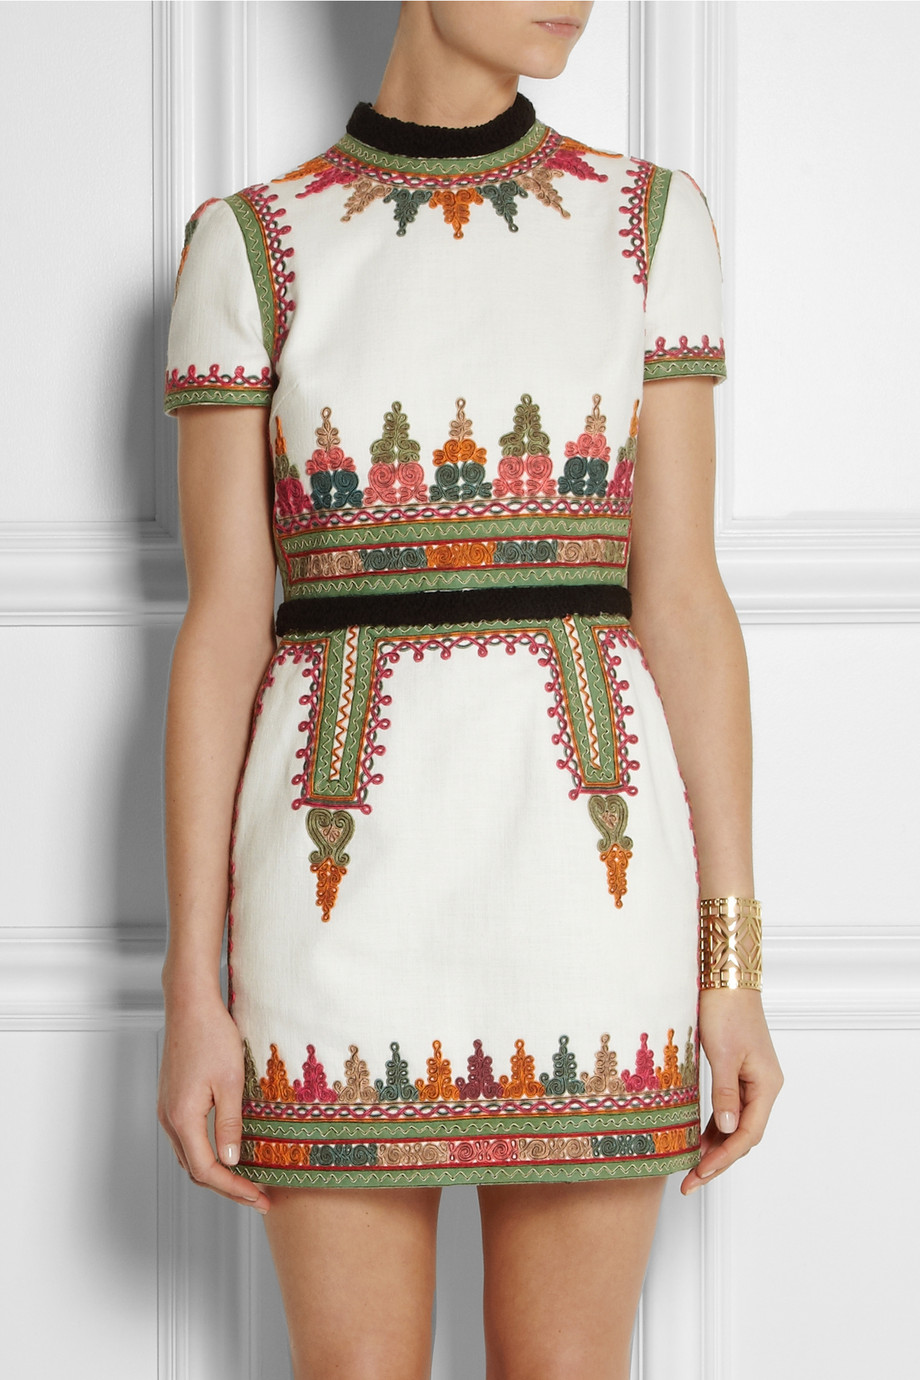 "total eye candy, file this one under ""trust fund shopping"". Valentino, price: don't ask"